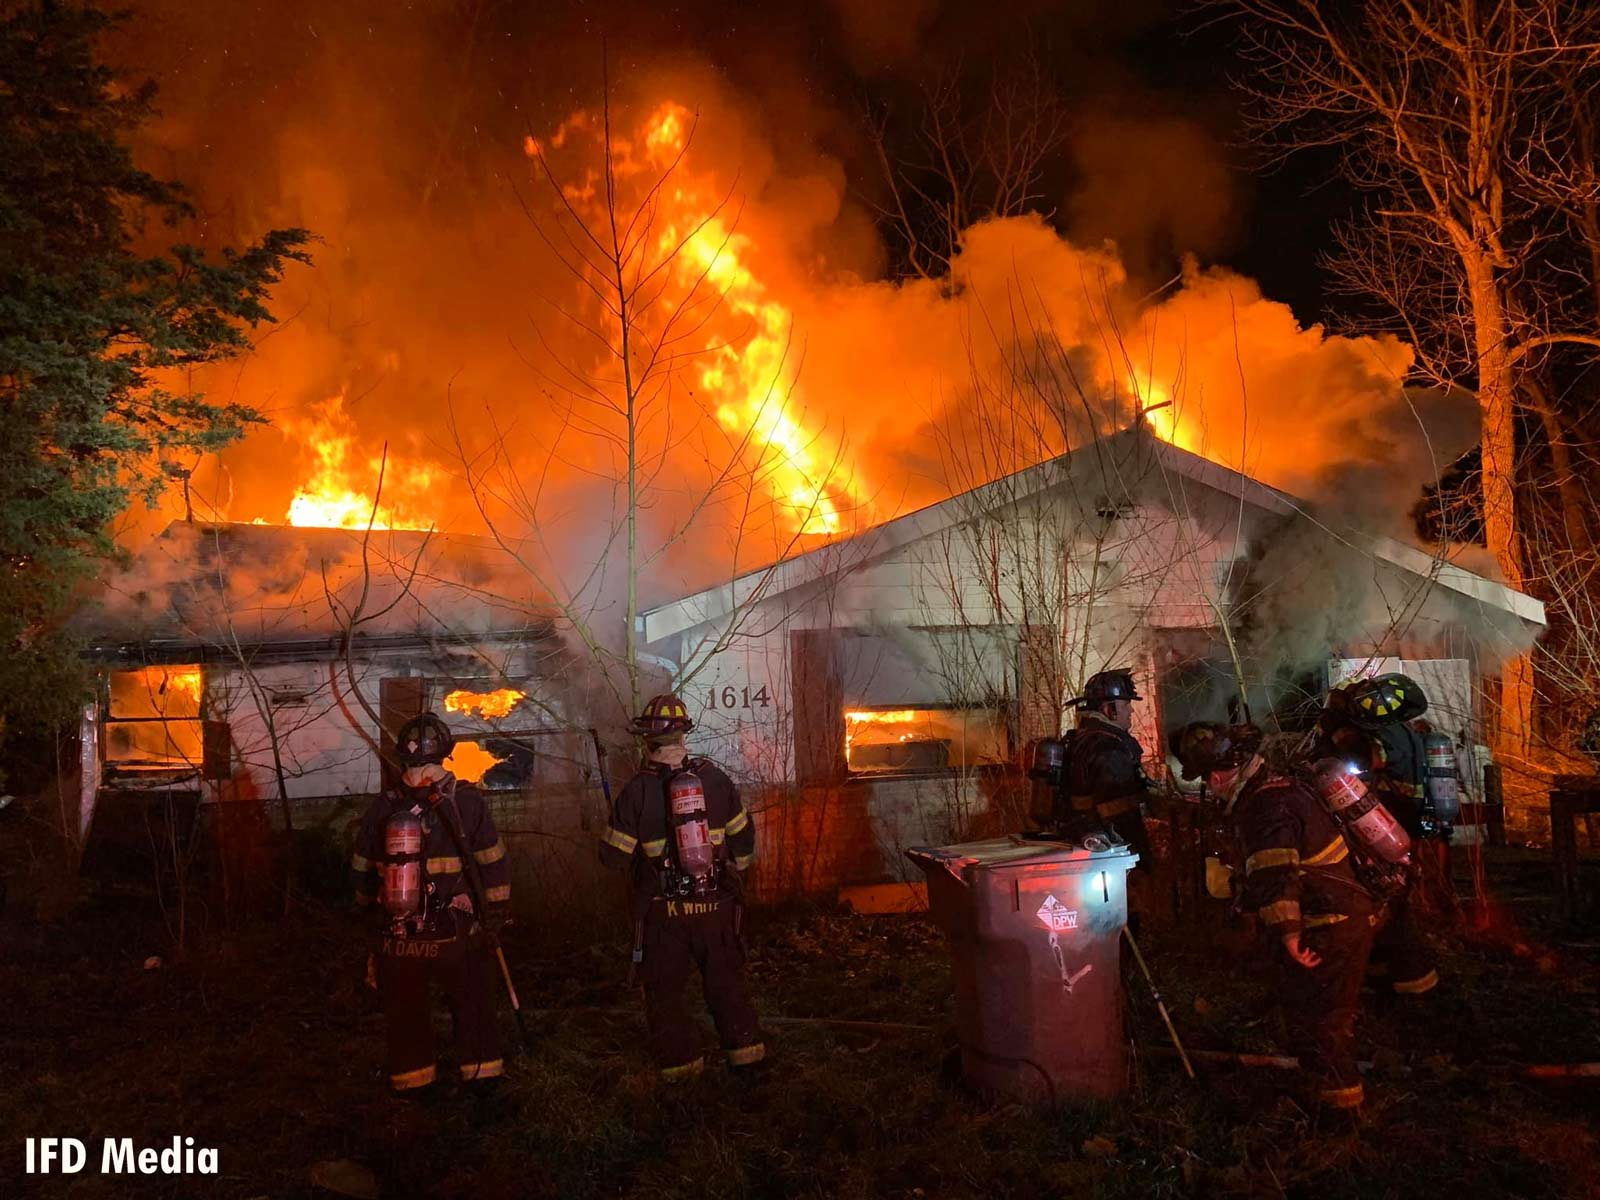 Indy fire crews work to control a residential fire